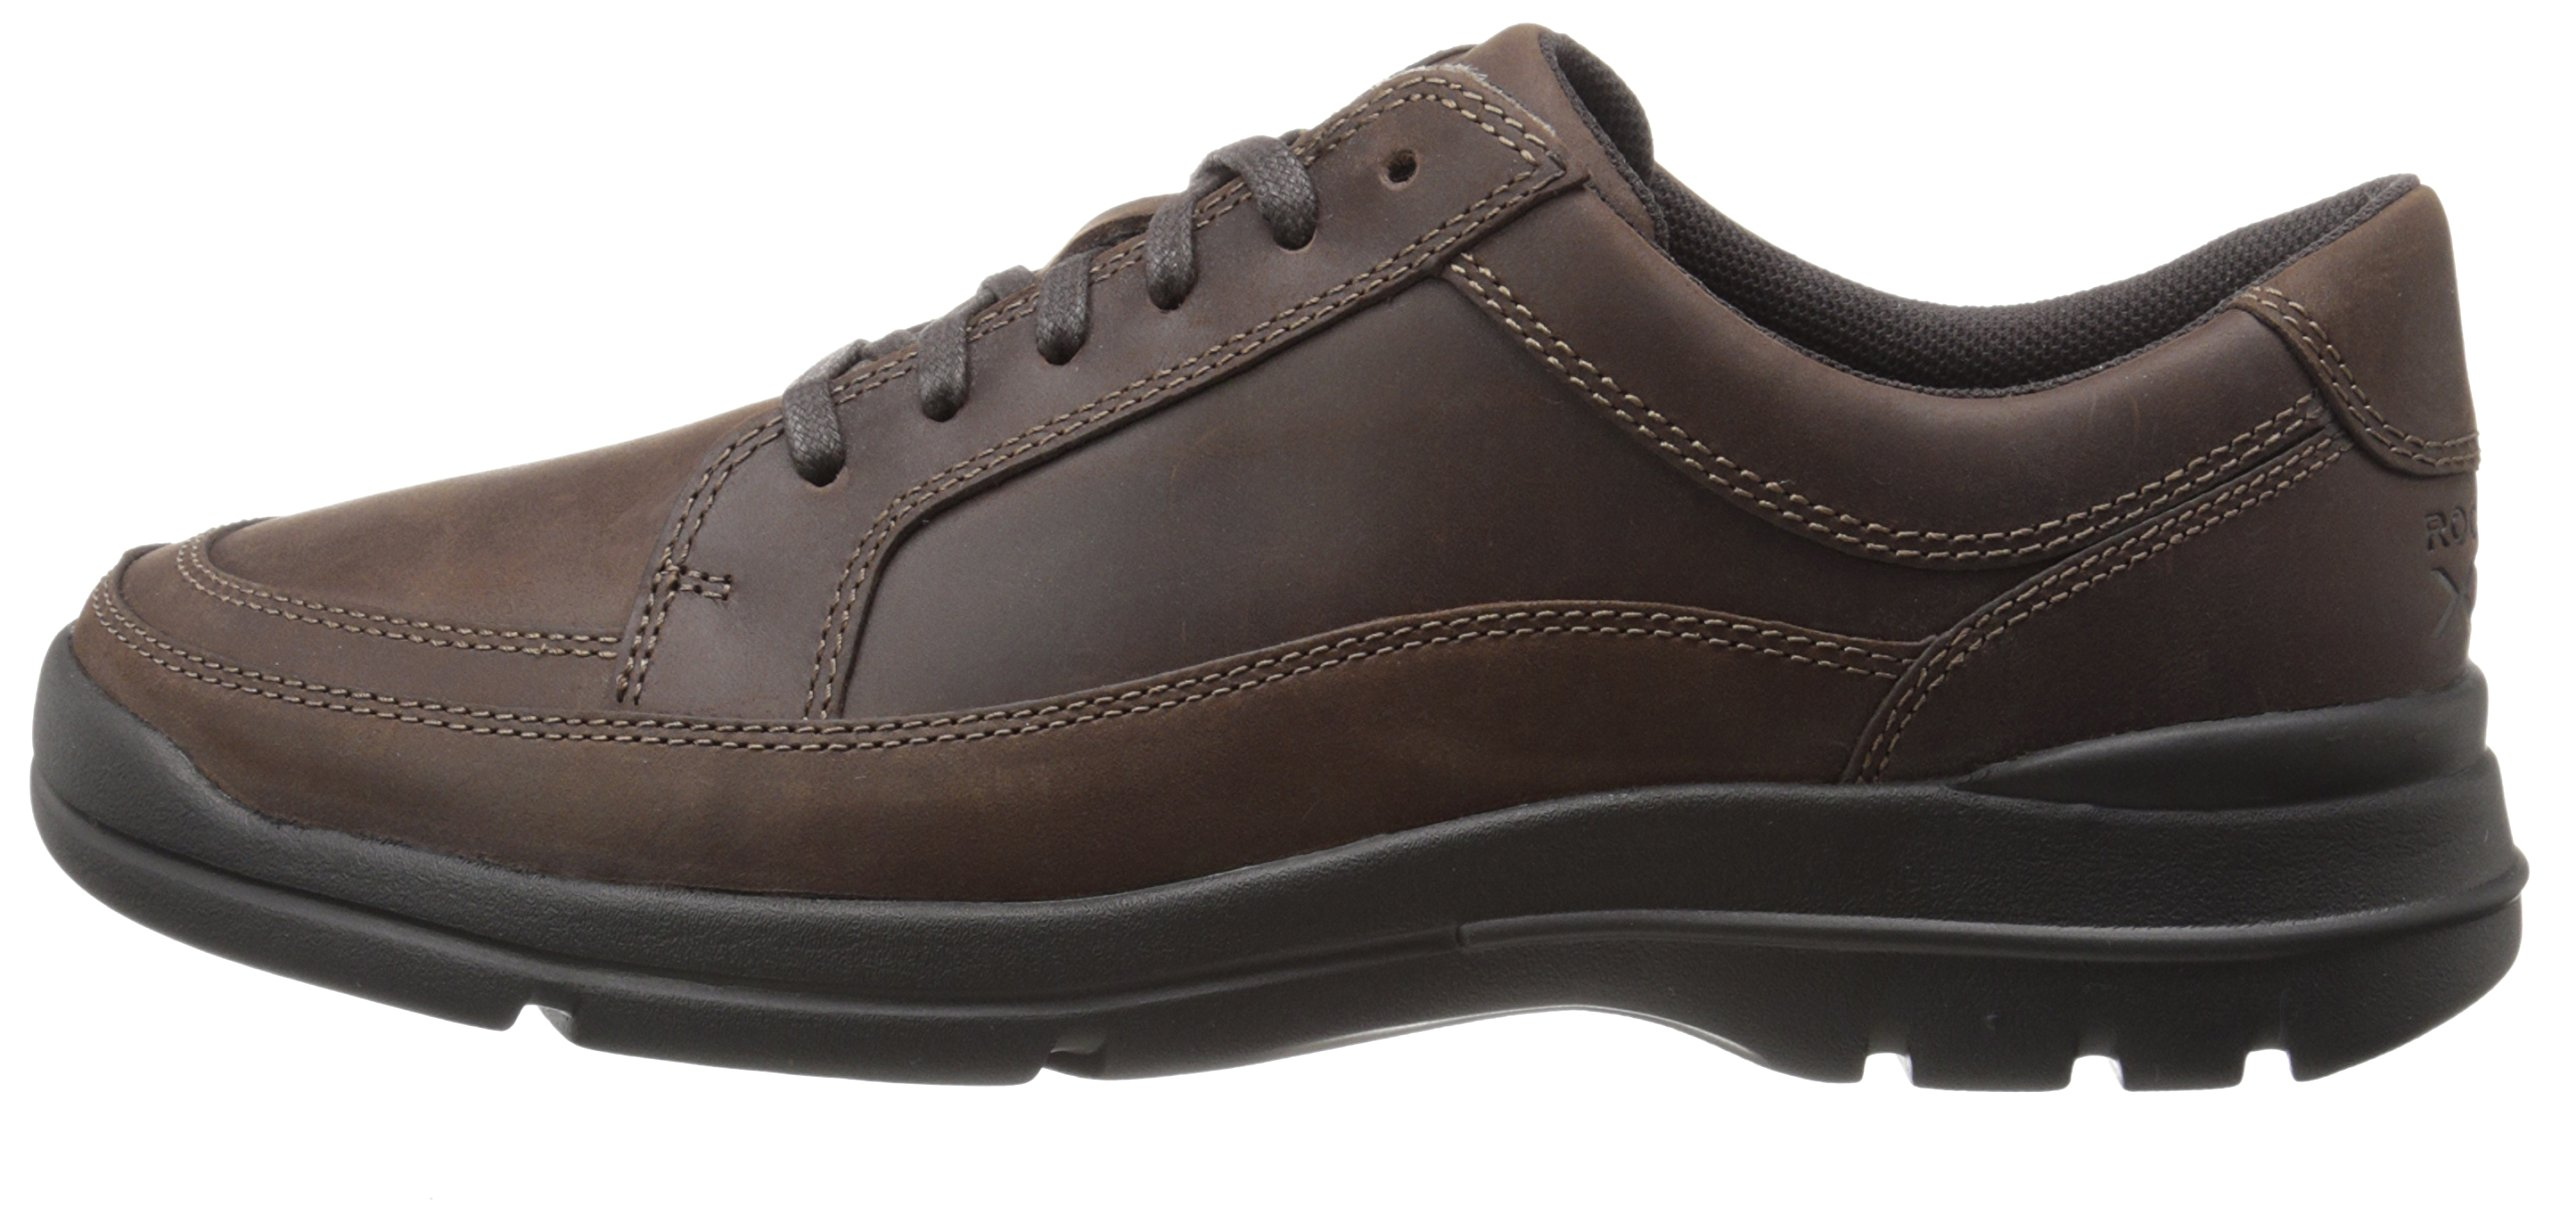 M78142 W ROCKPORT XCS TWO LACE TO TOE MEN/'S BROWN LEATHER OXFORD WIDE